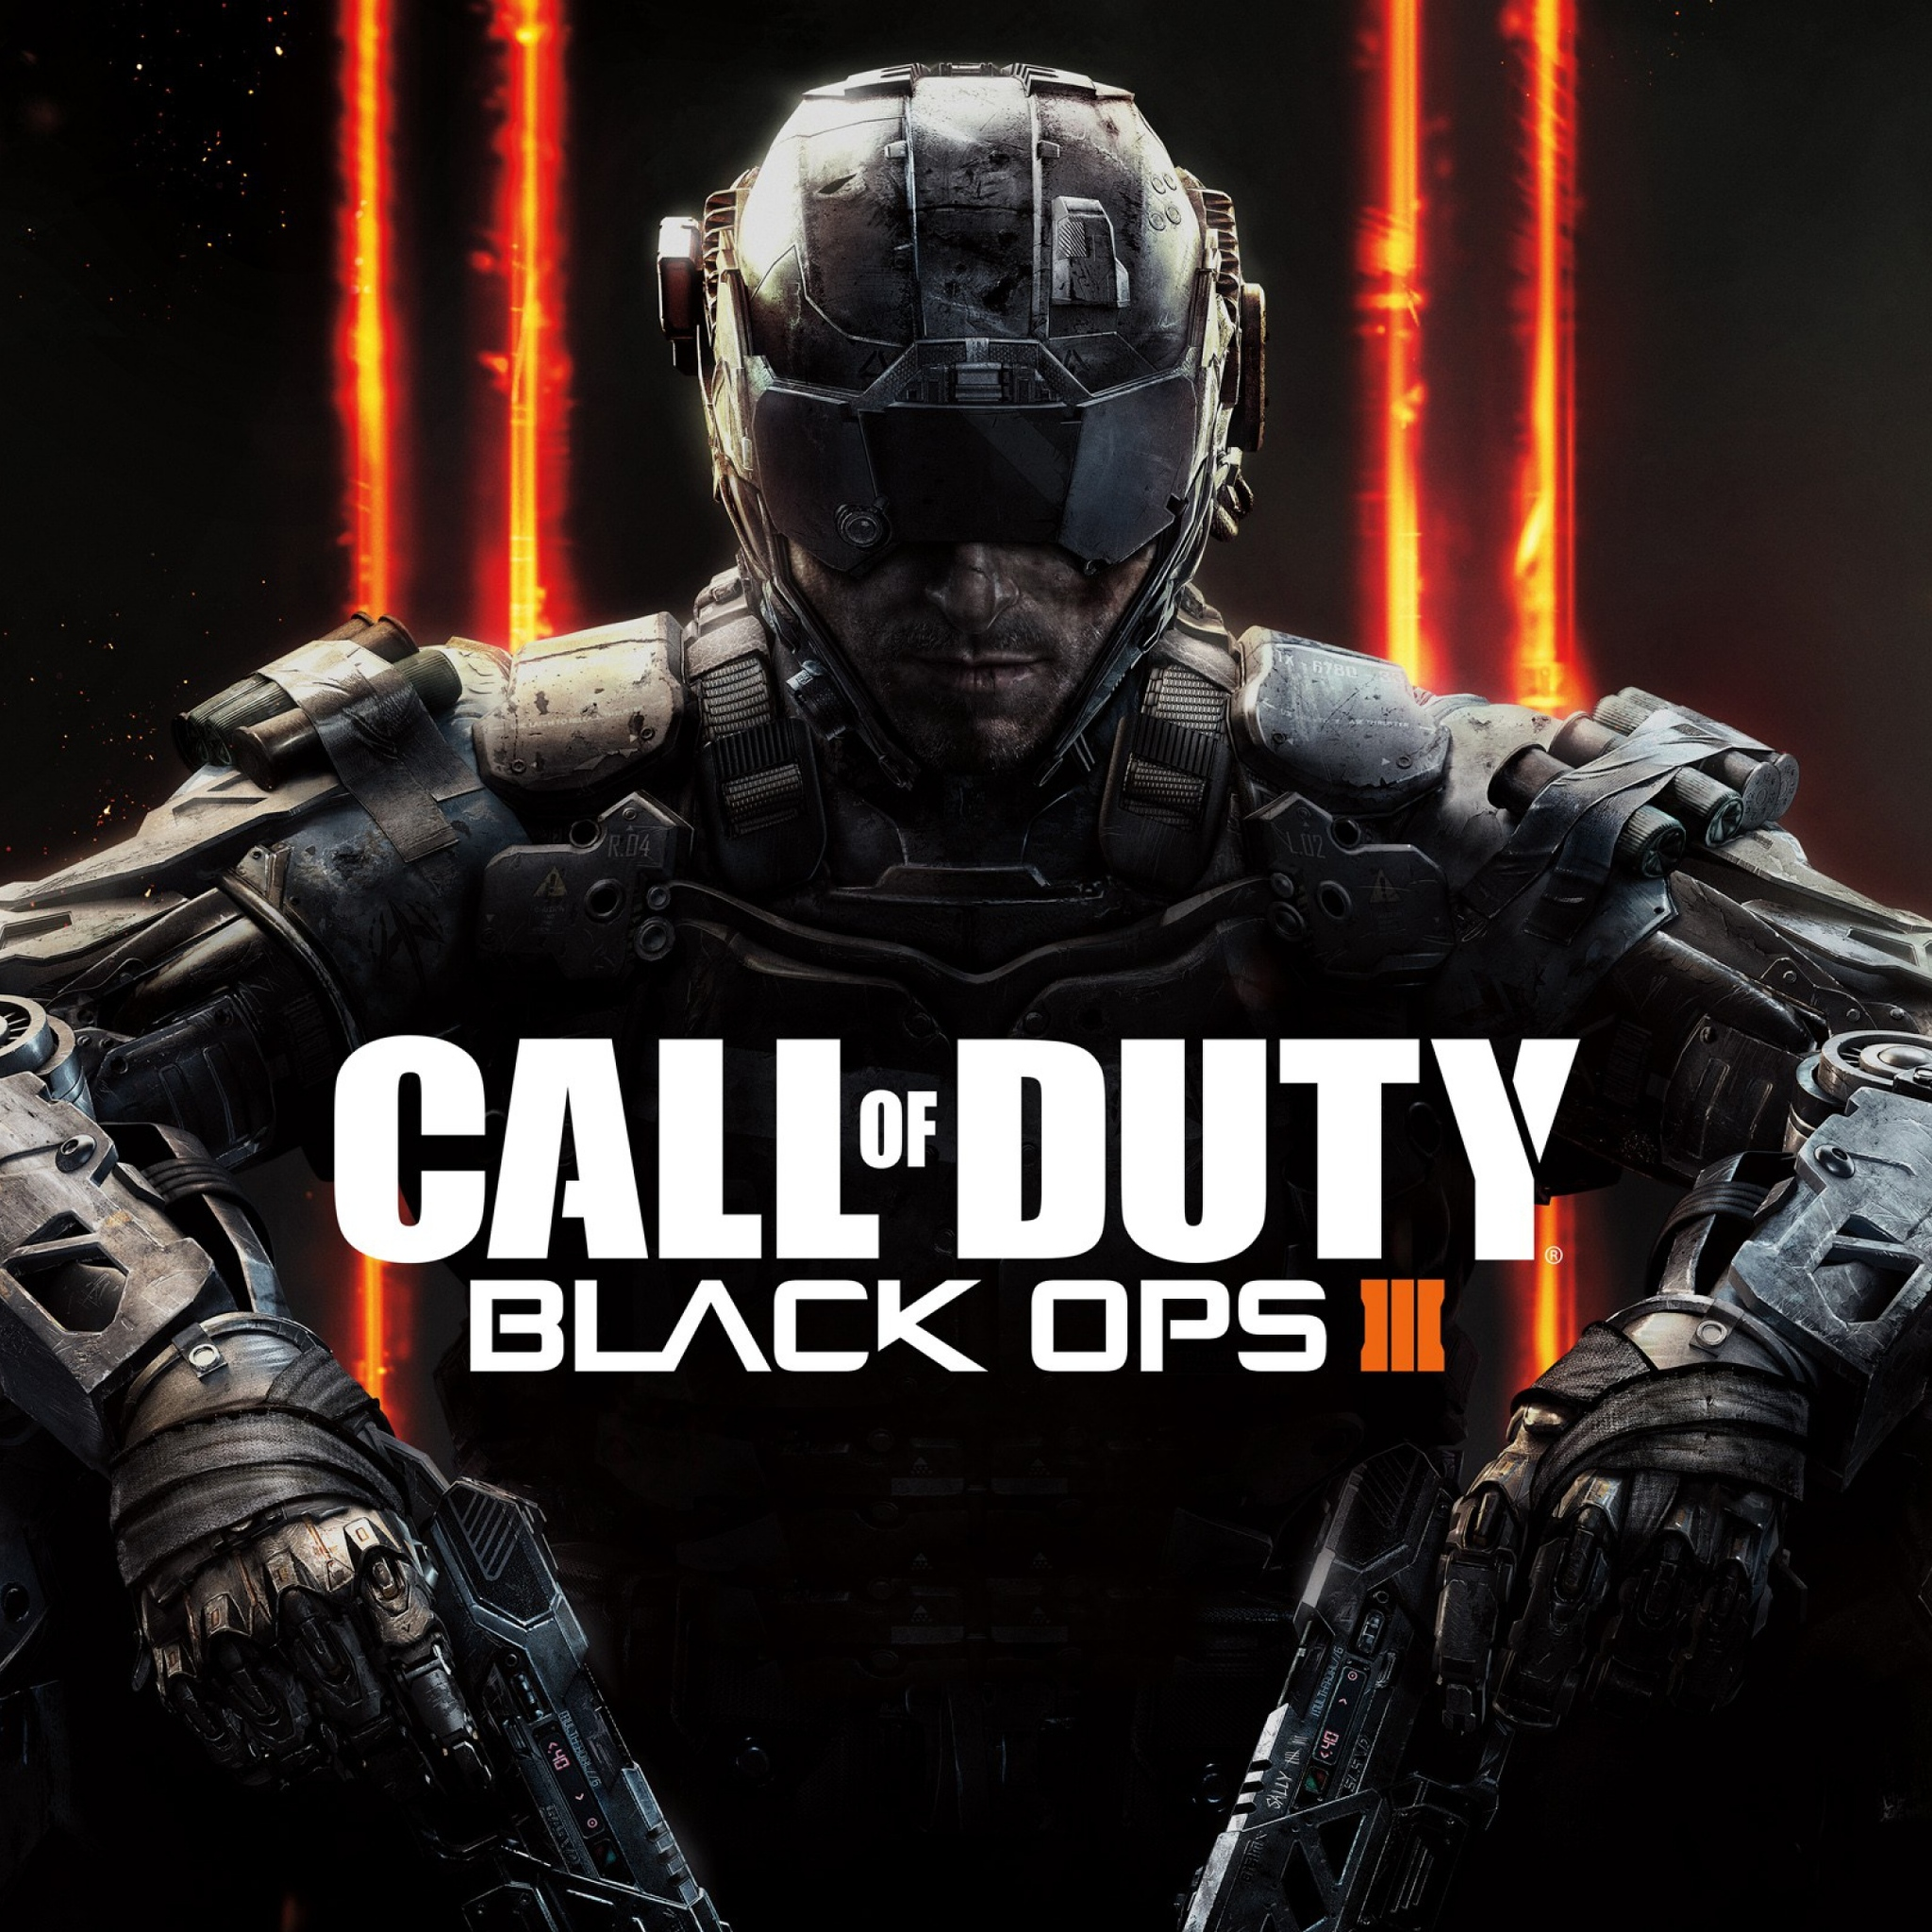 2048x2048 Call Of Duty Black Ops 3 Ipad Air Hd 4k Wallpapers